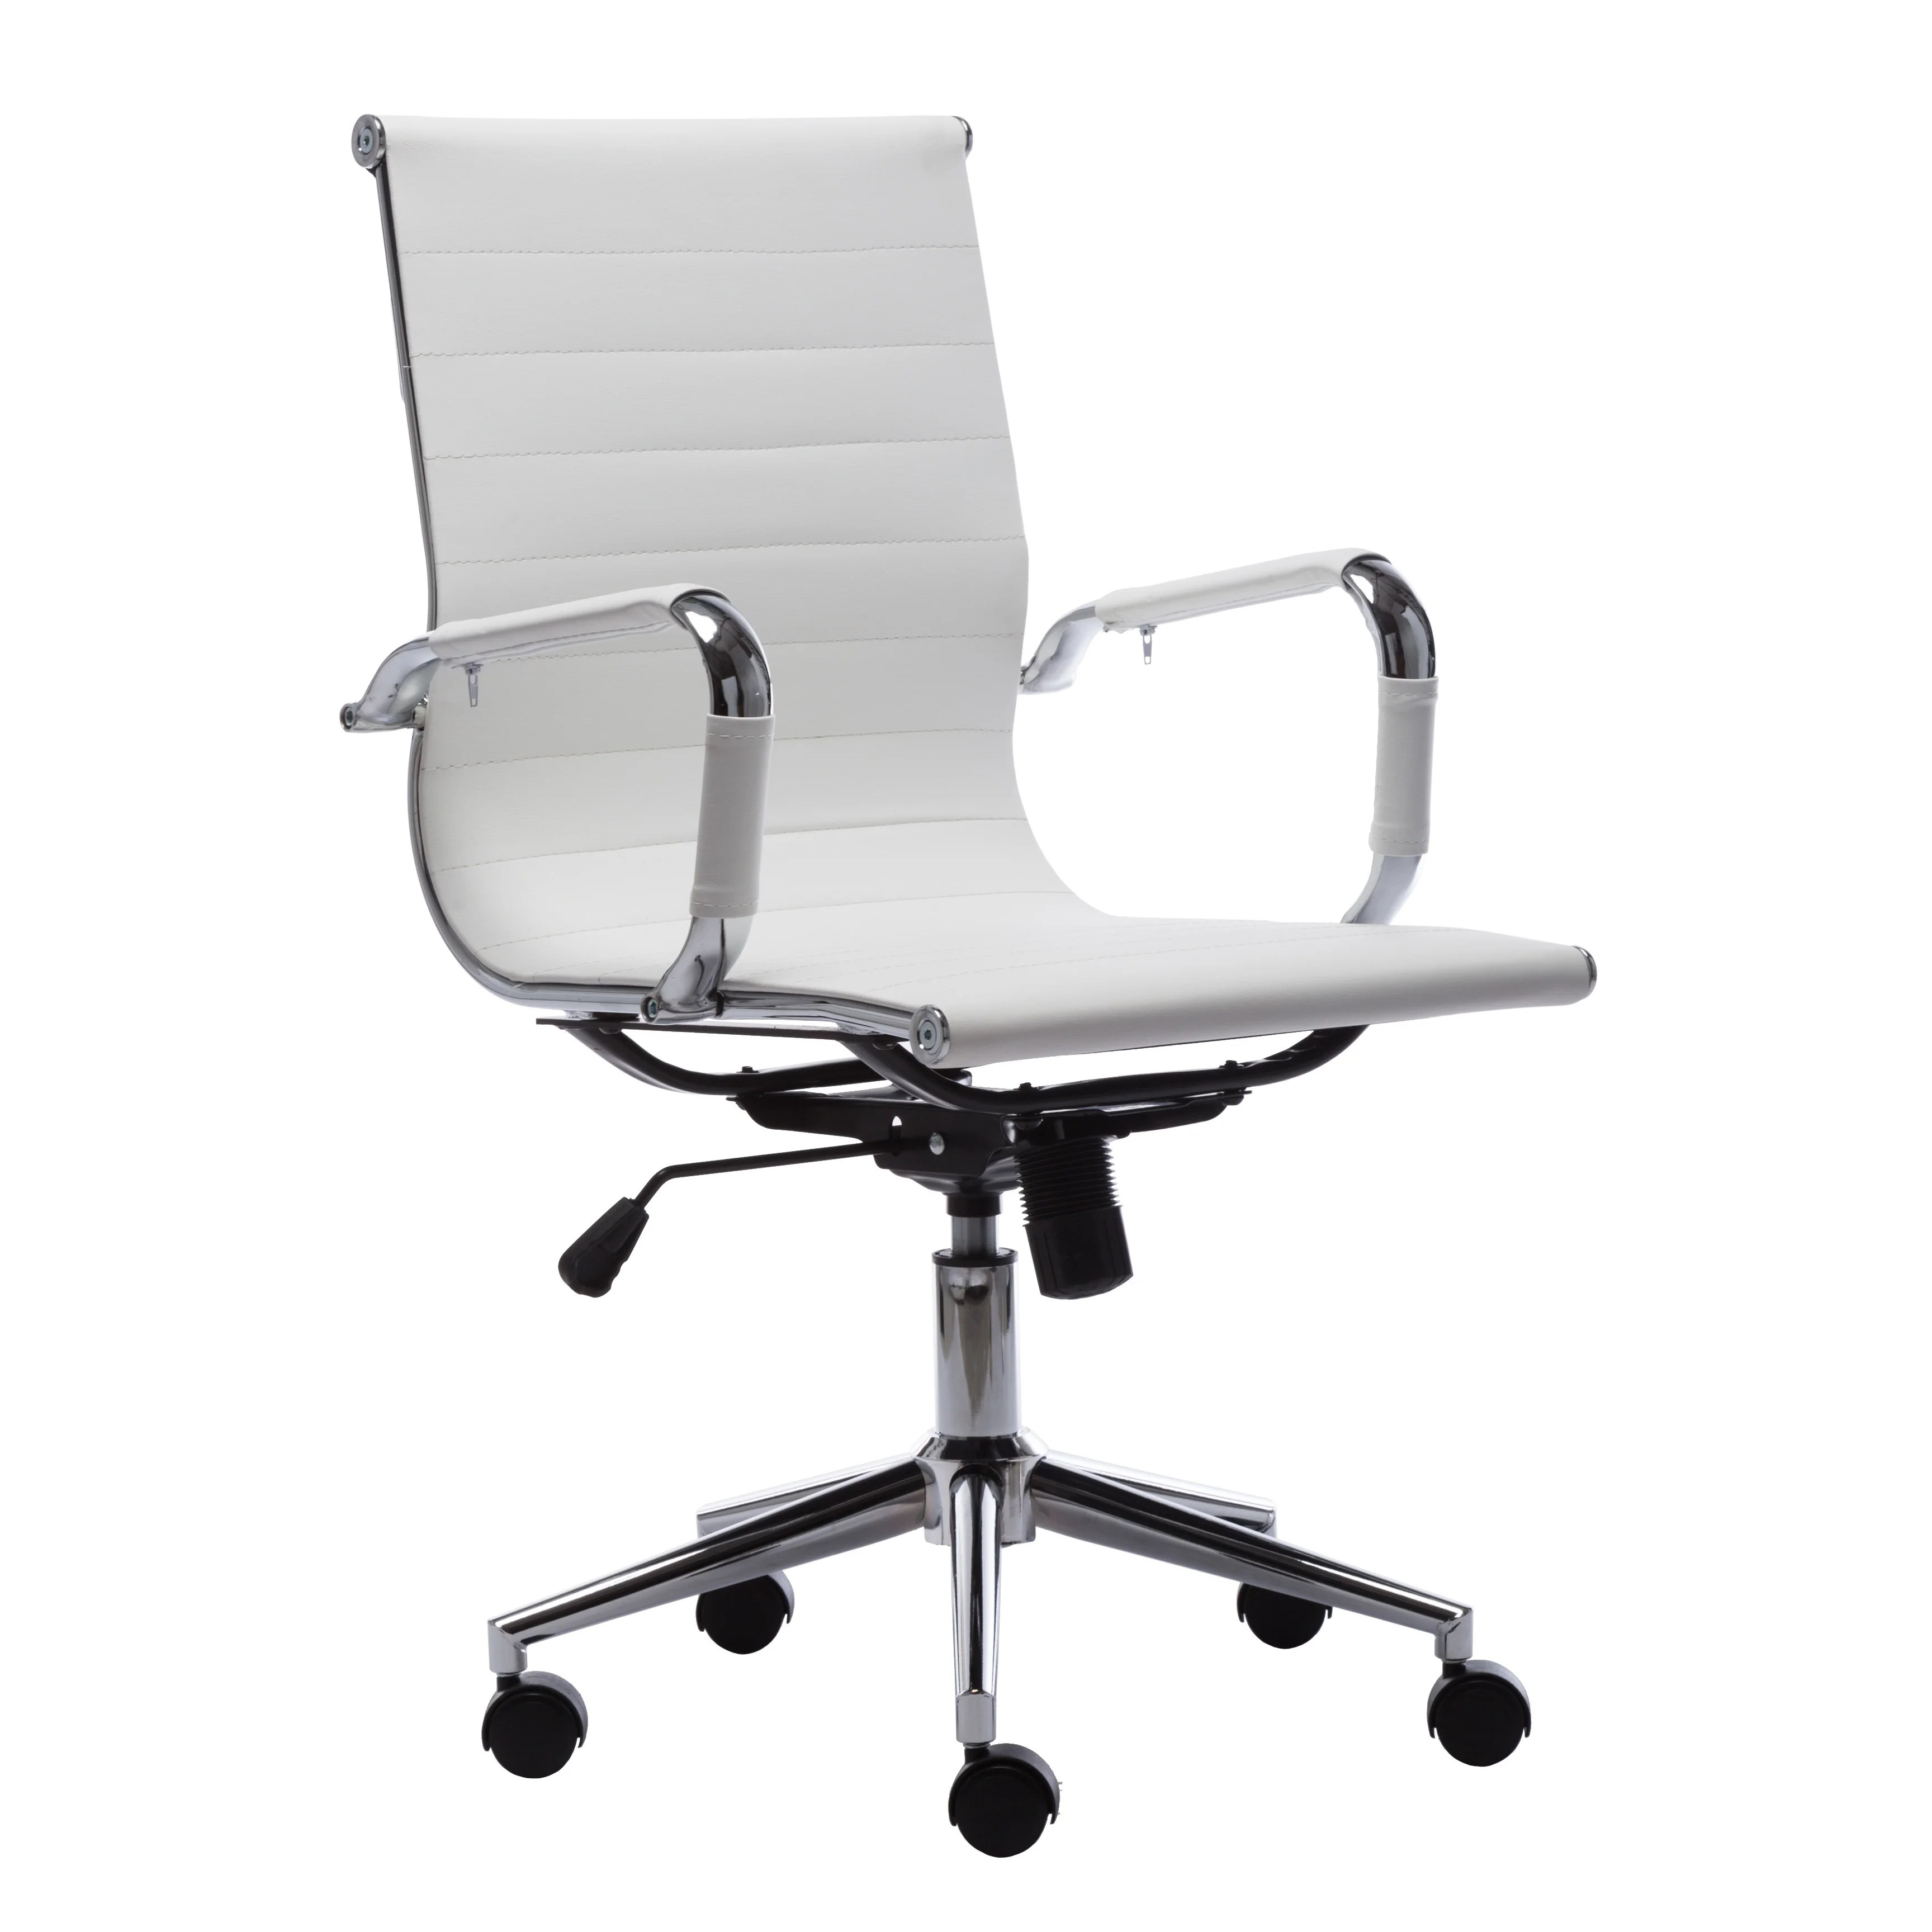 Chairs Comfortable Porthos Home Office Chair Comfortable Premium Modern Office Chairs